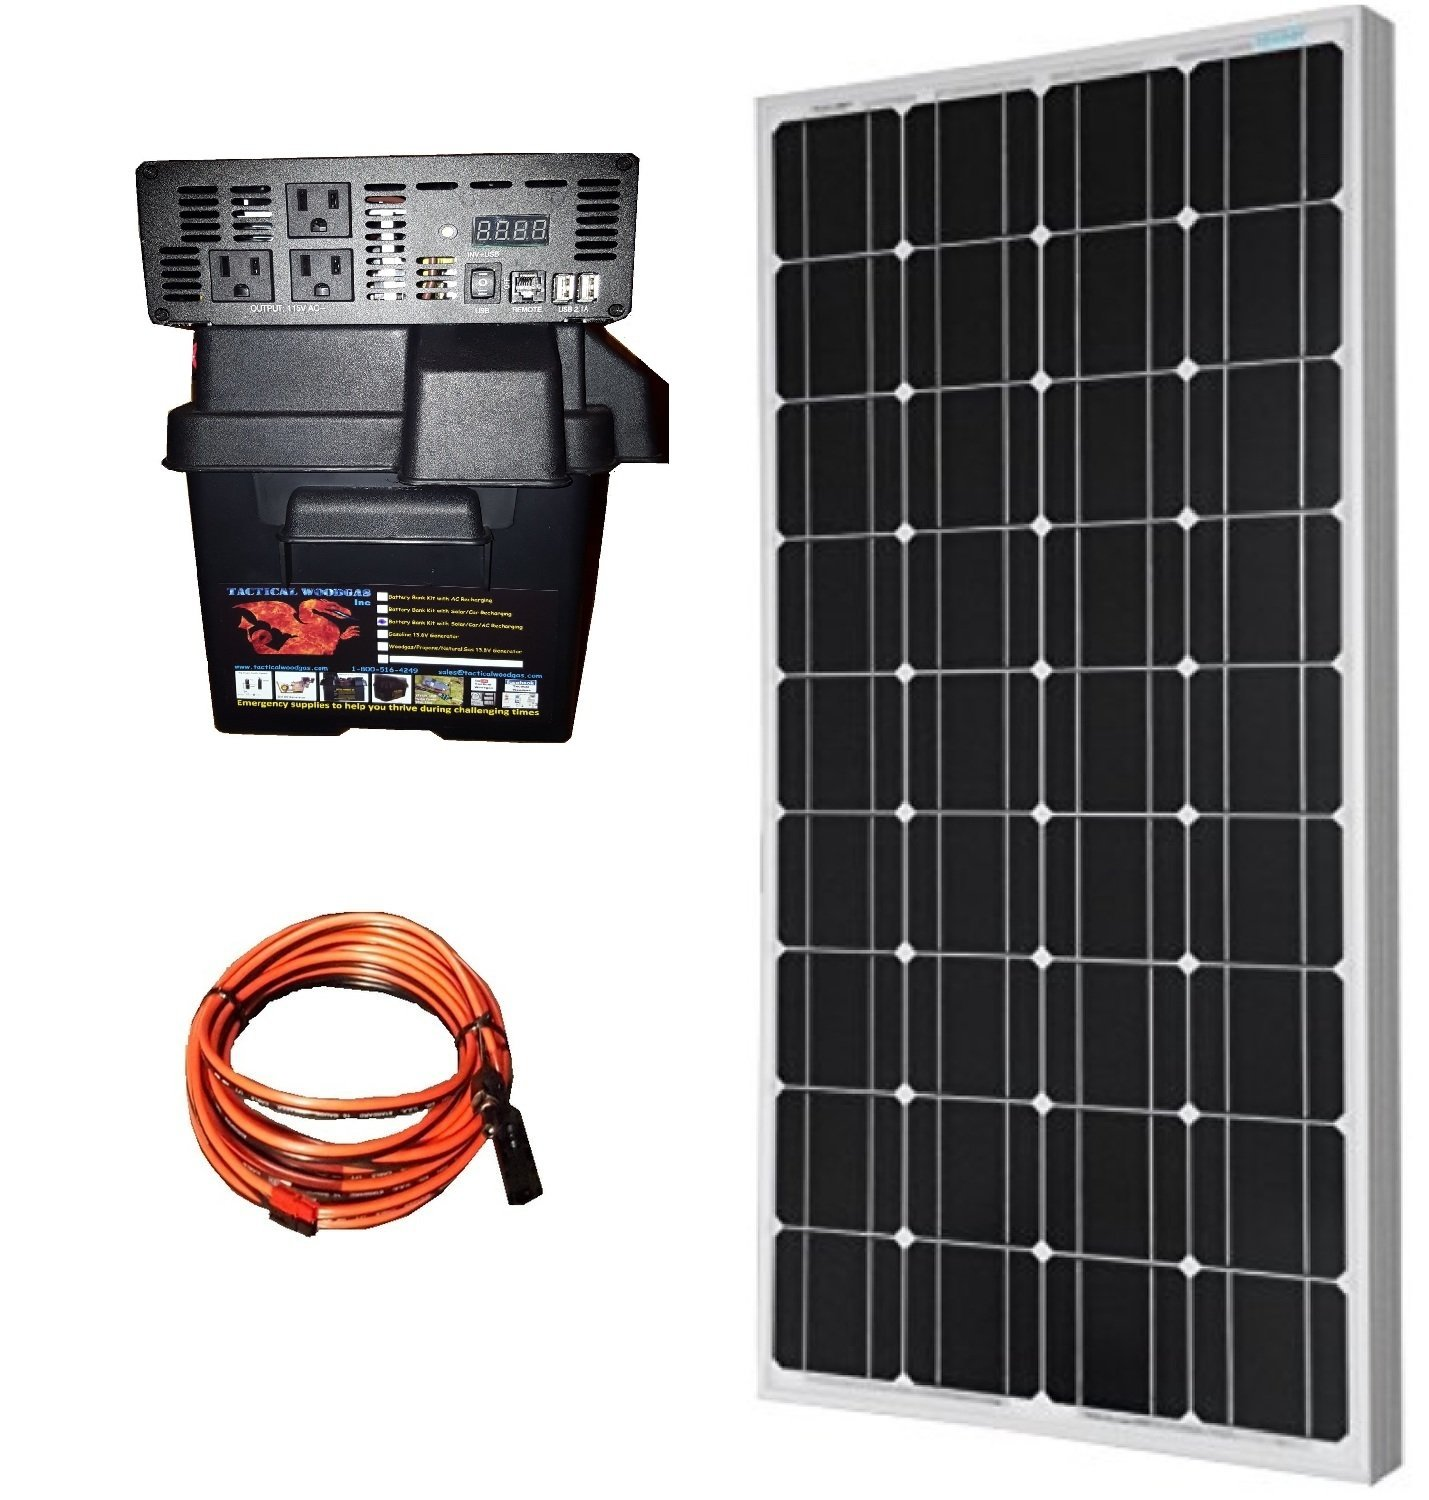 1200W Battery Bank PLUS 100W solar panel & connecting cable